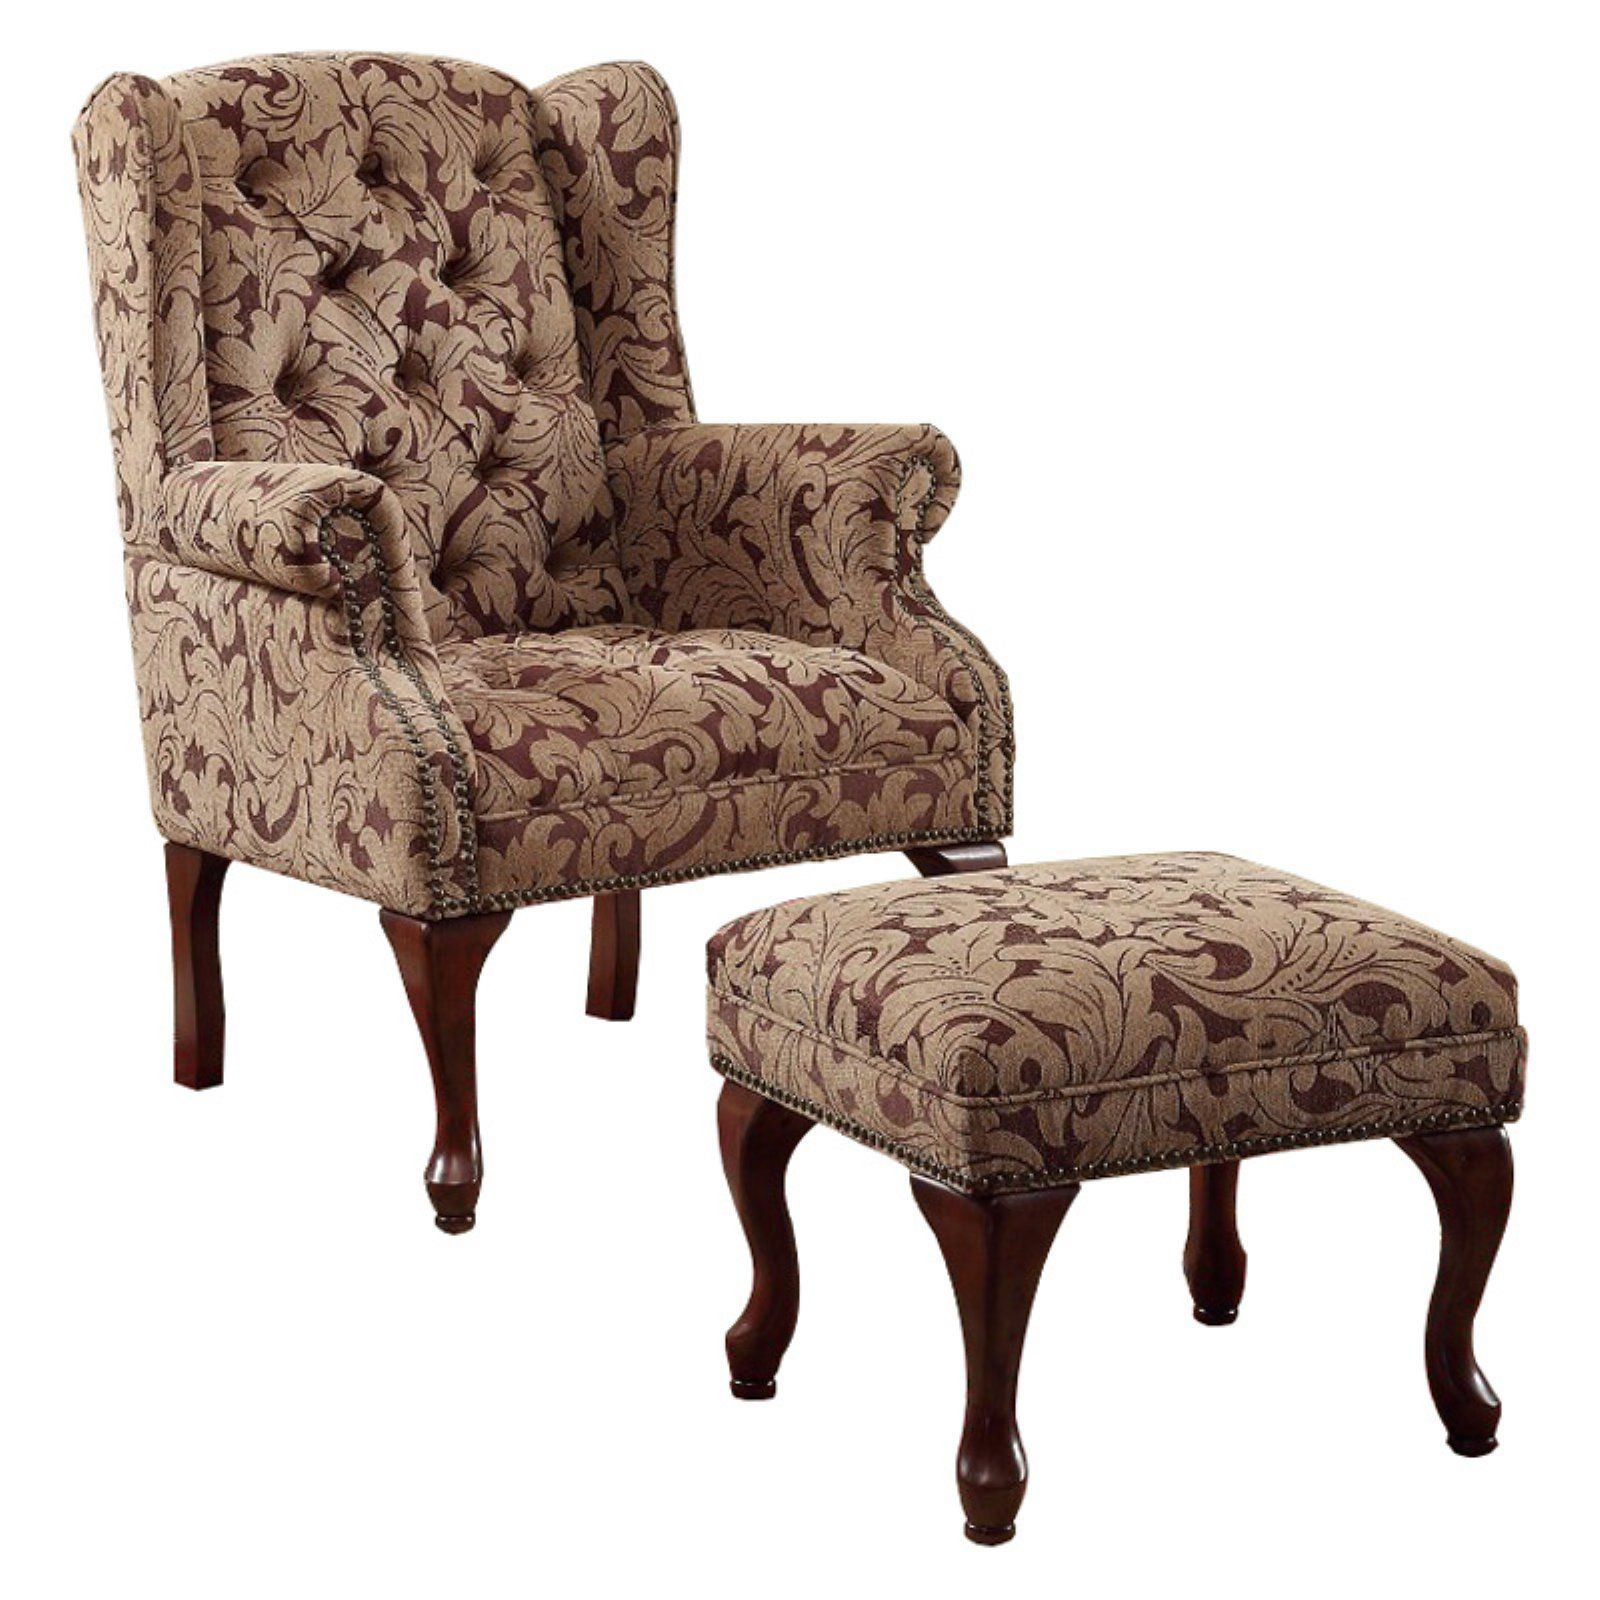 Benzara Classic Floral Wingback Chair With Ottoman Chair And